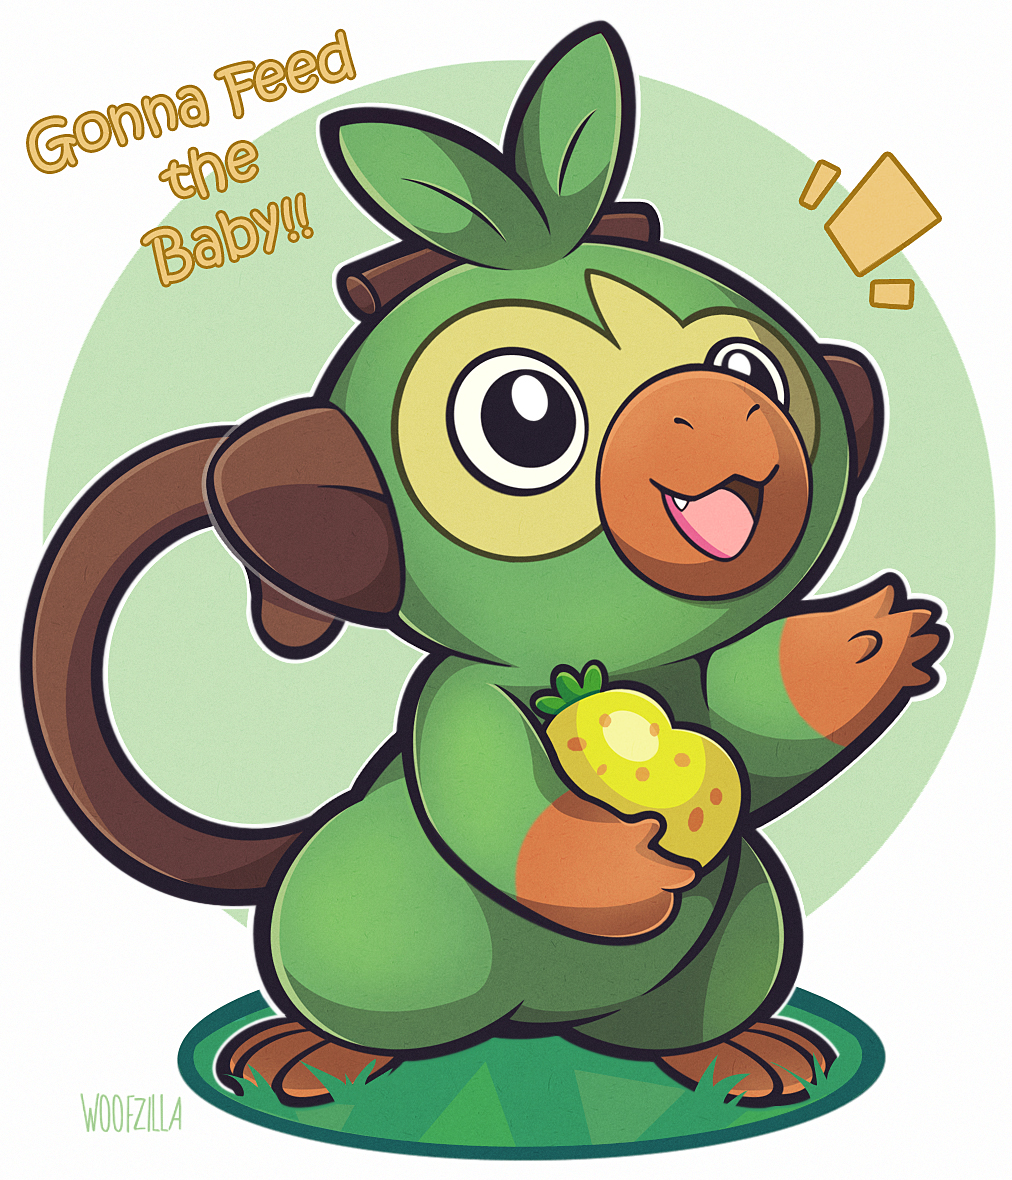 Grookey Pokemon Sword Shield Image 2509784 Zerochan Anime Image Board Want to discover art related to grookey? image 2509784 zerochan anime